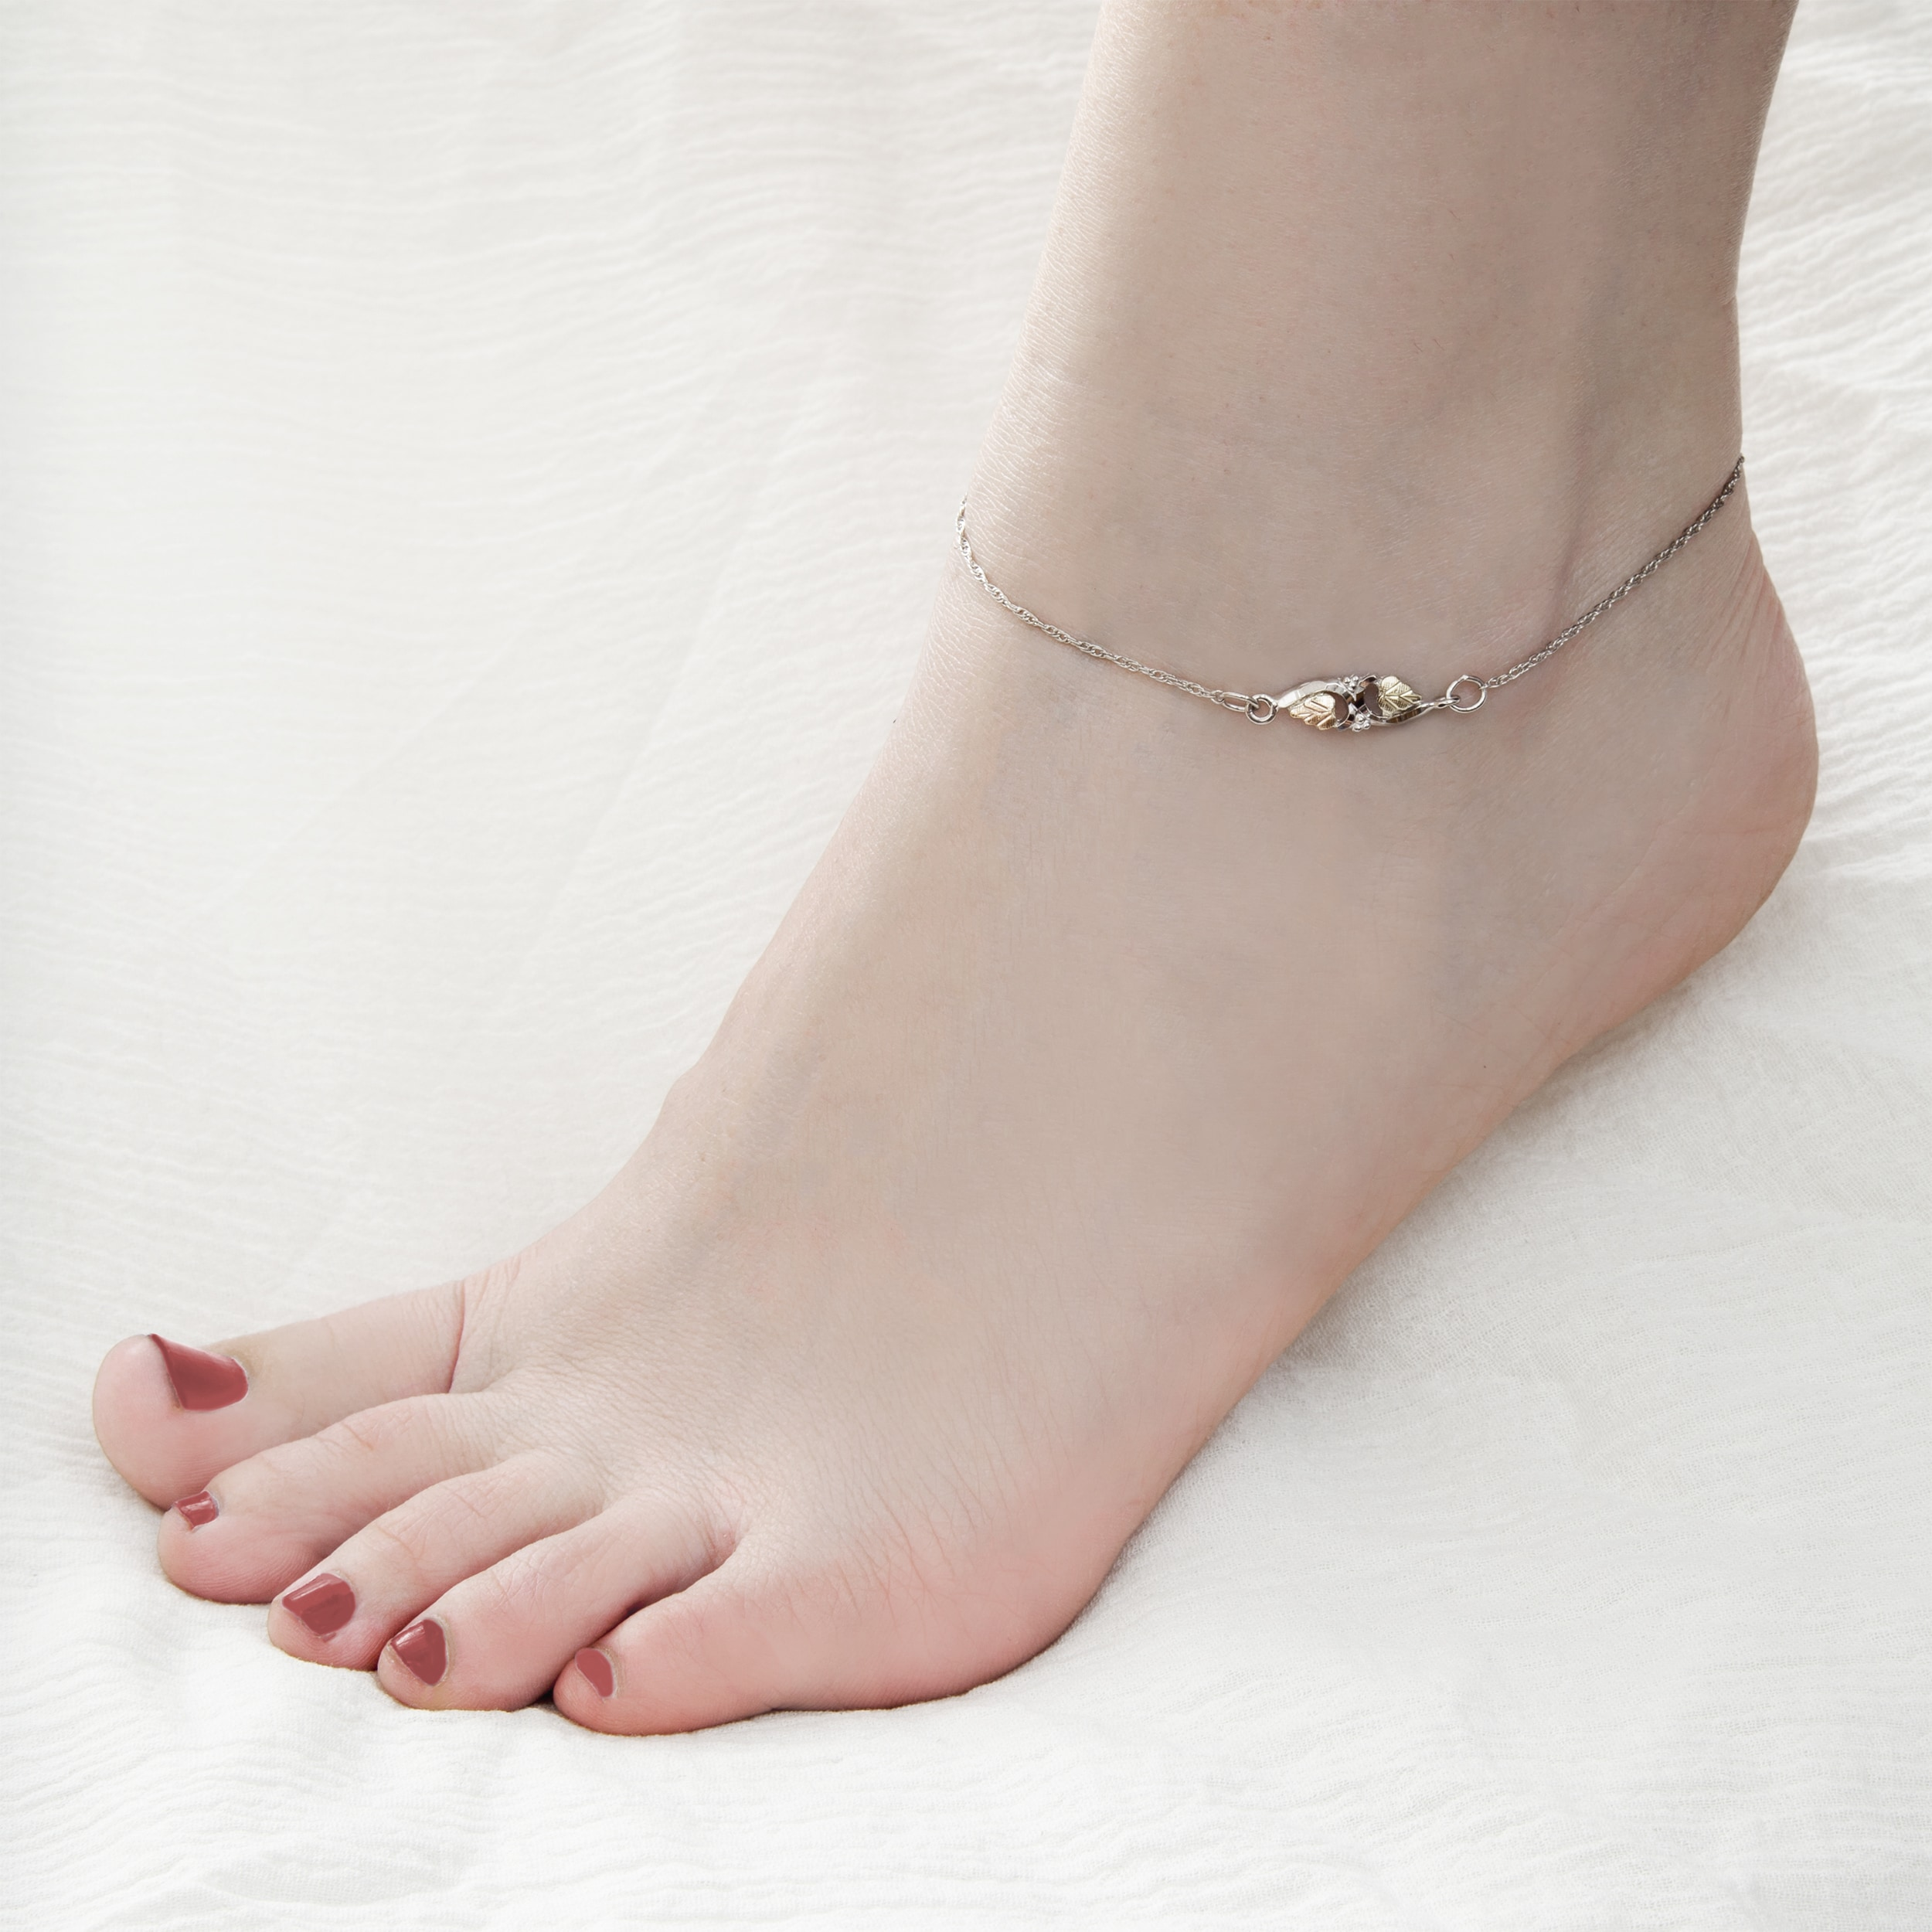 setting sterling bracelet silver anklet jewellery rubover design tennis slider